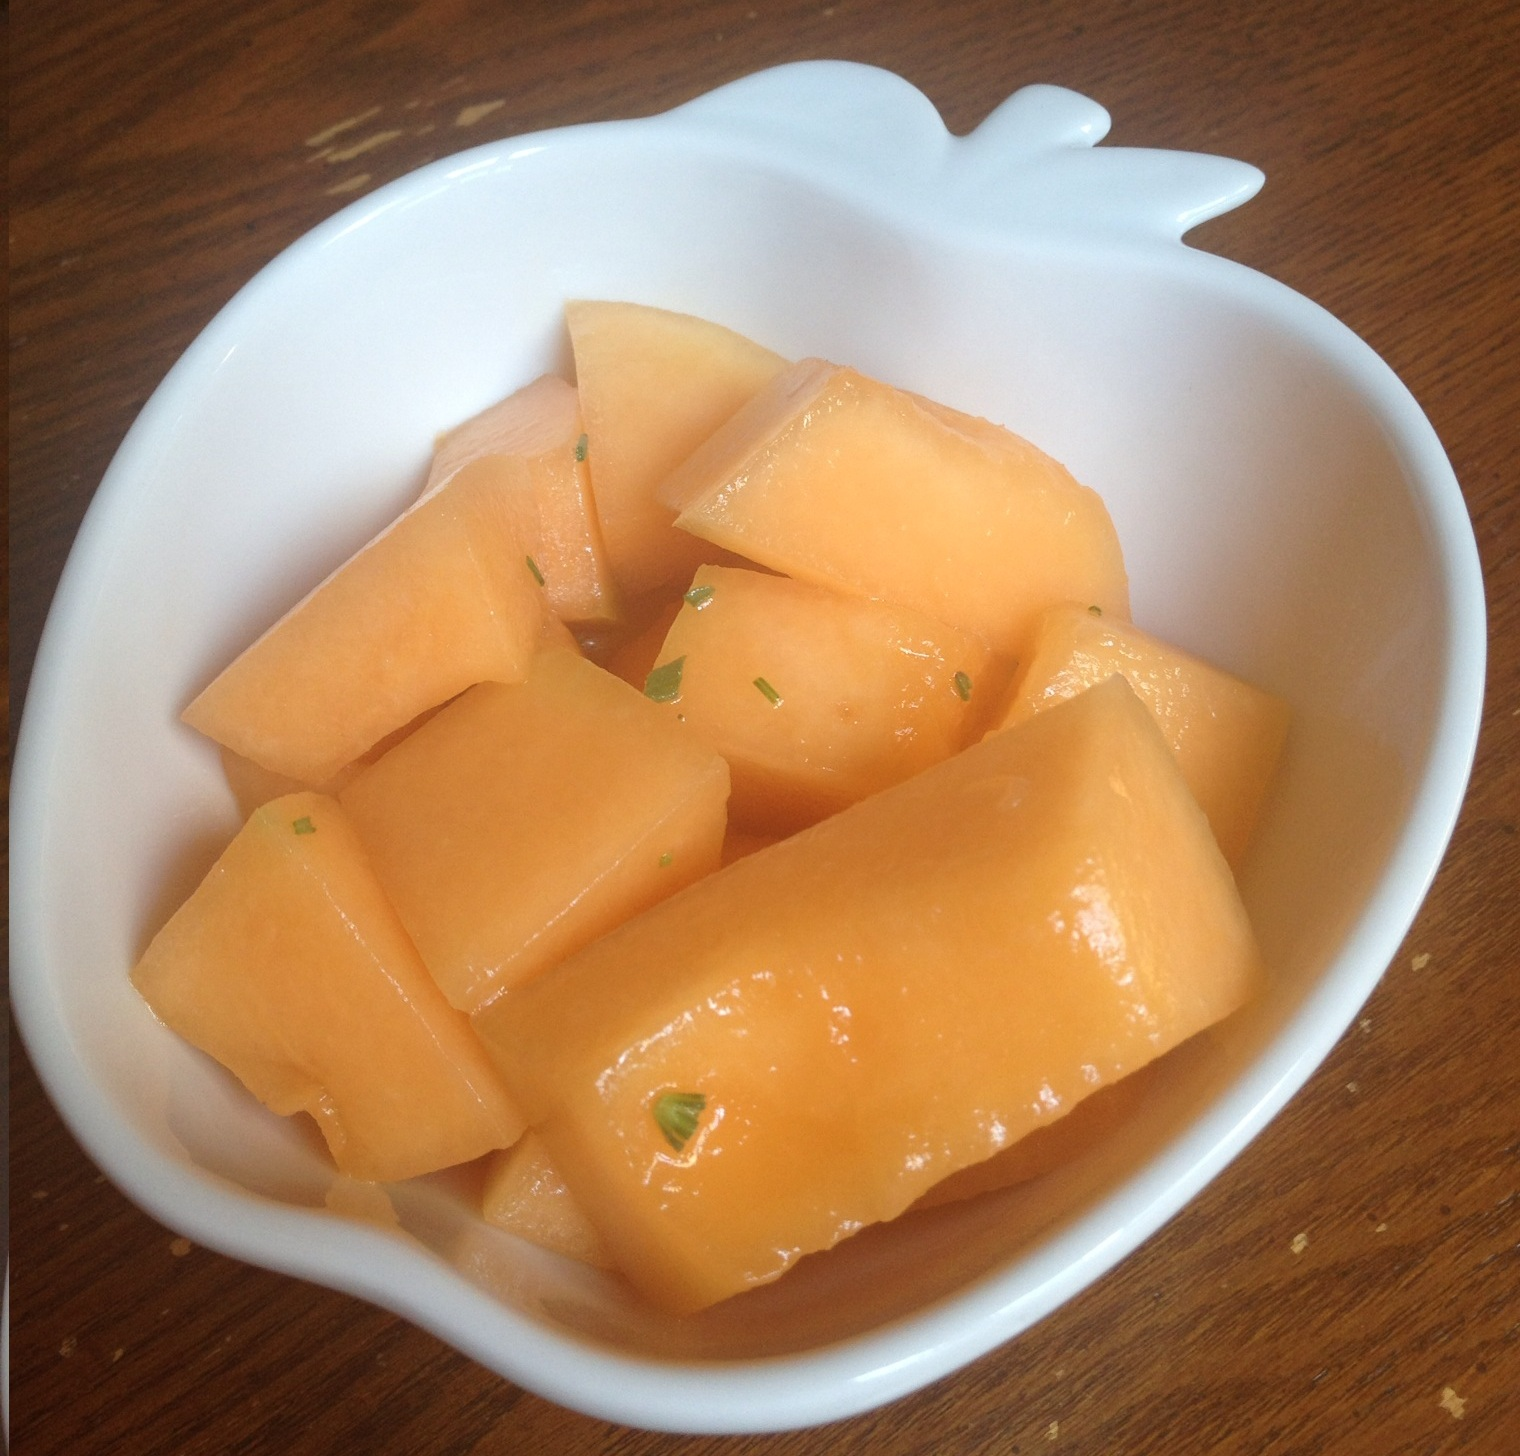 how to cut a cantaloupe into chunks